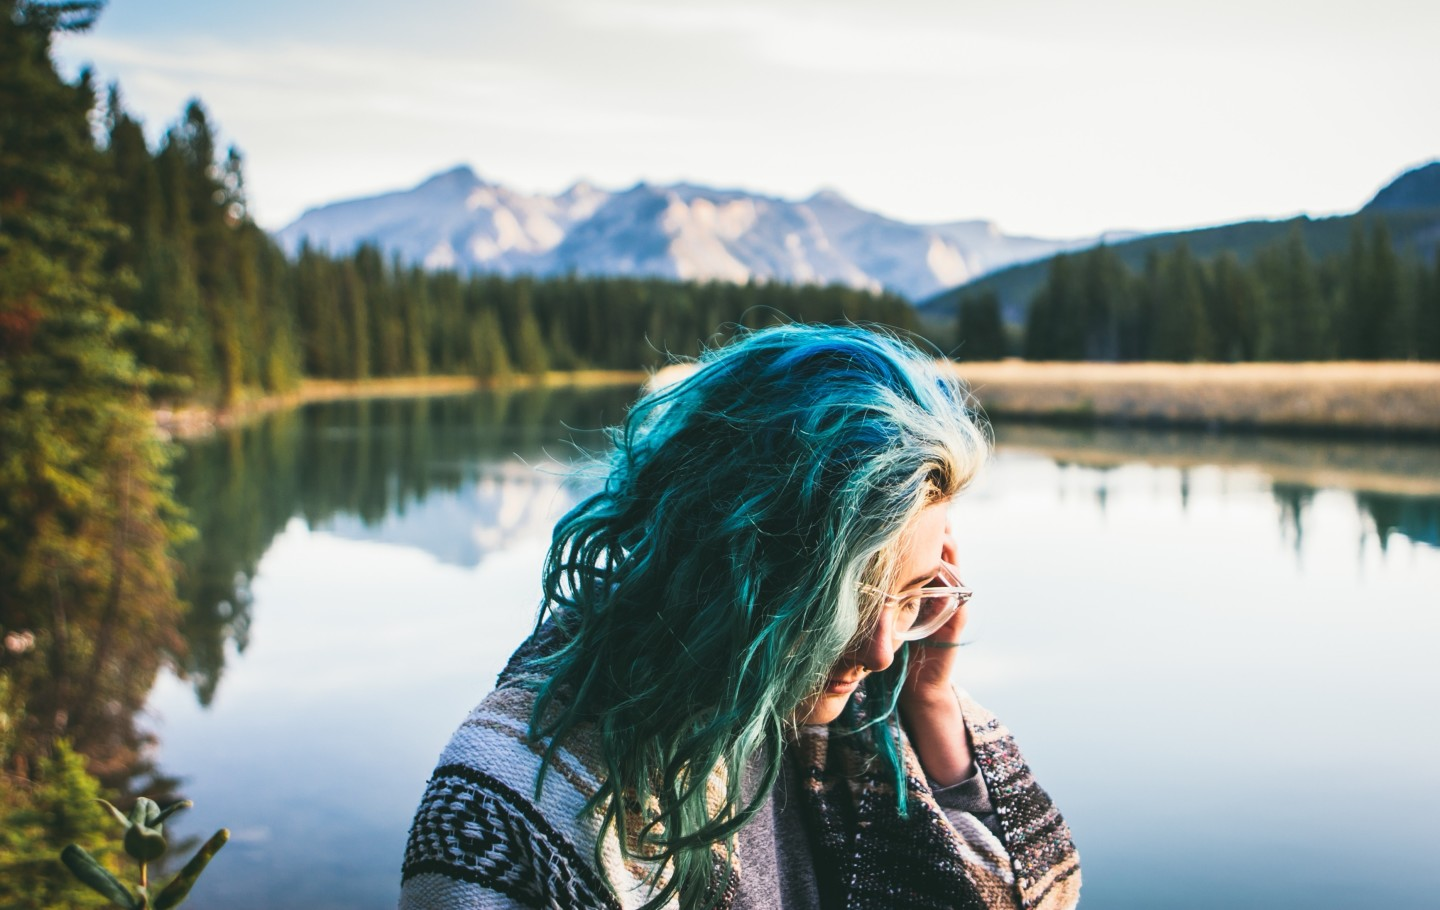 colored-hair-woman-nature